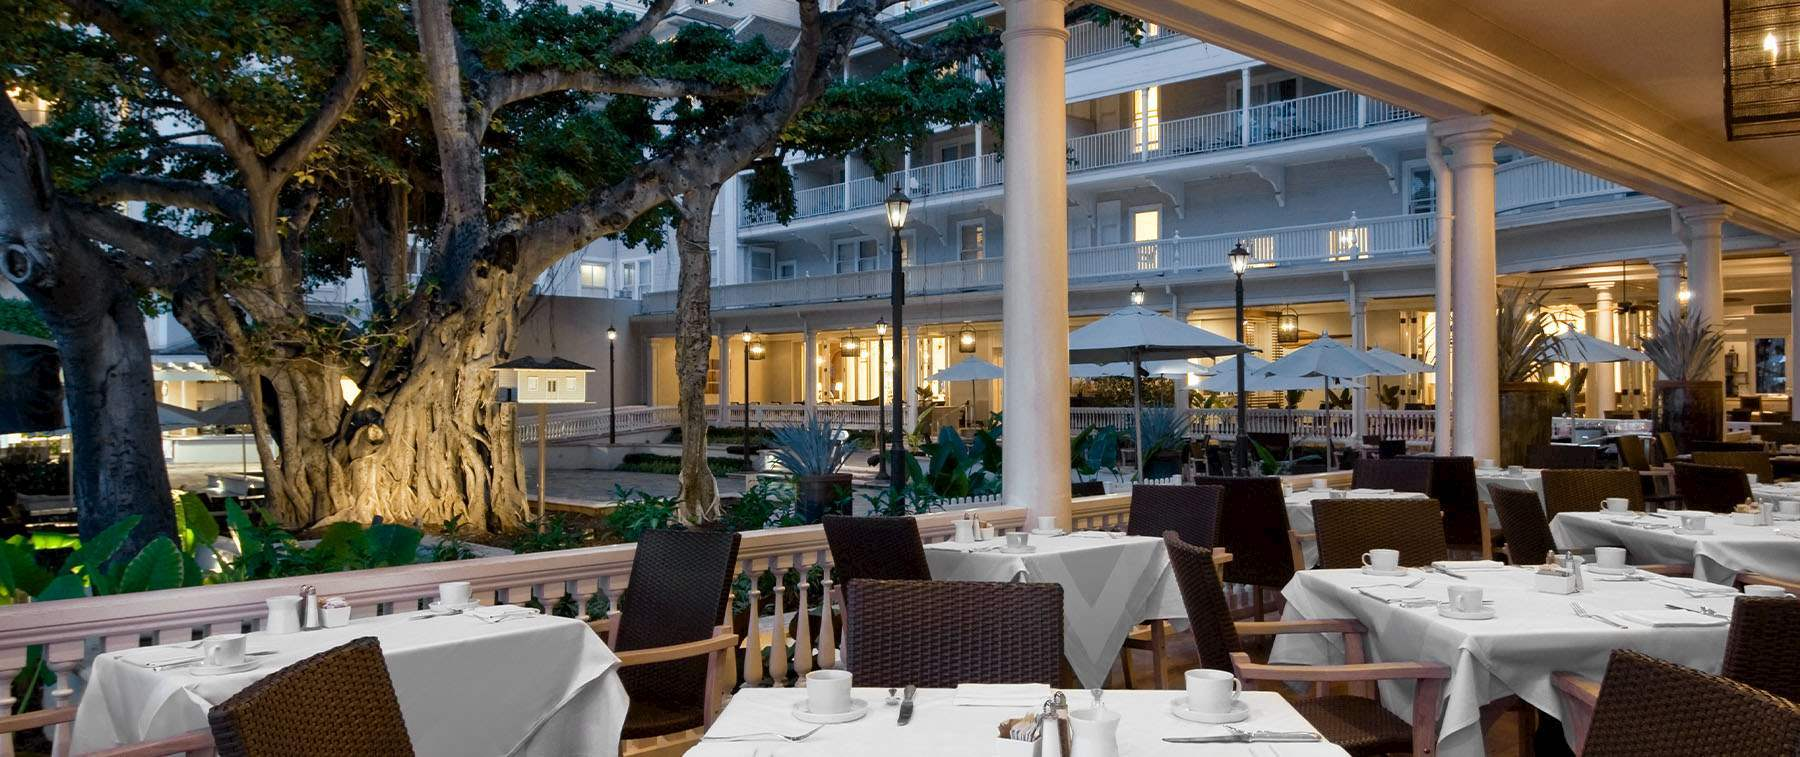 take in scenic ceanfront views at breakfast